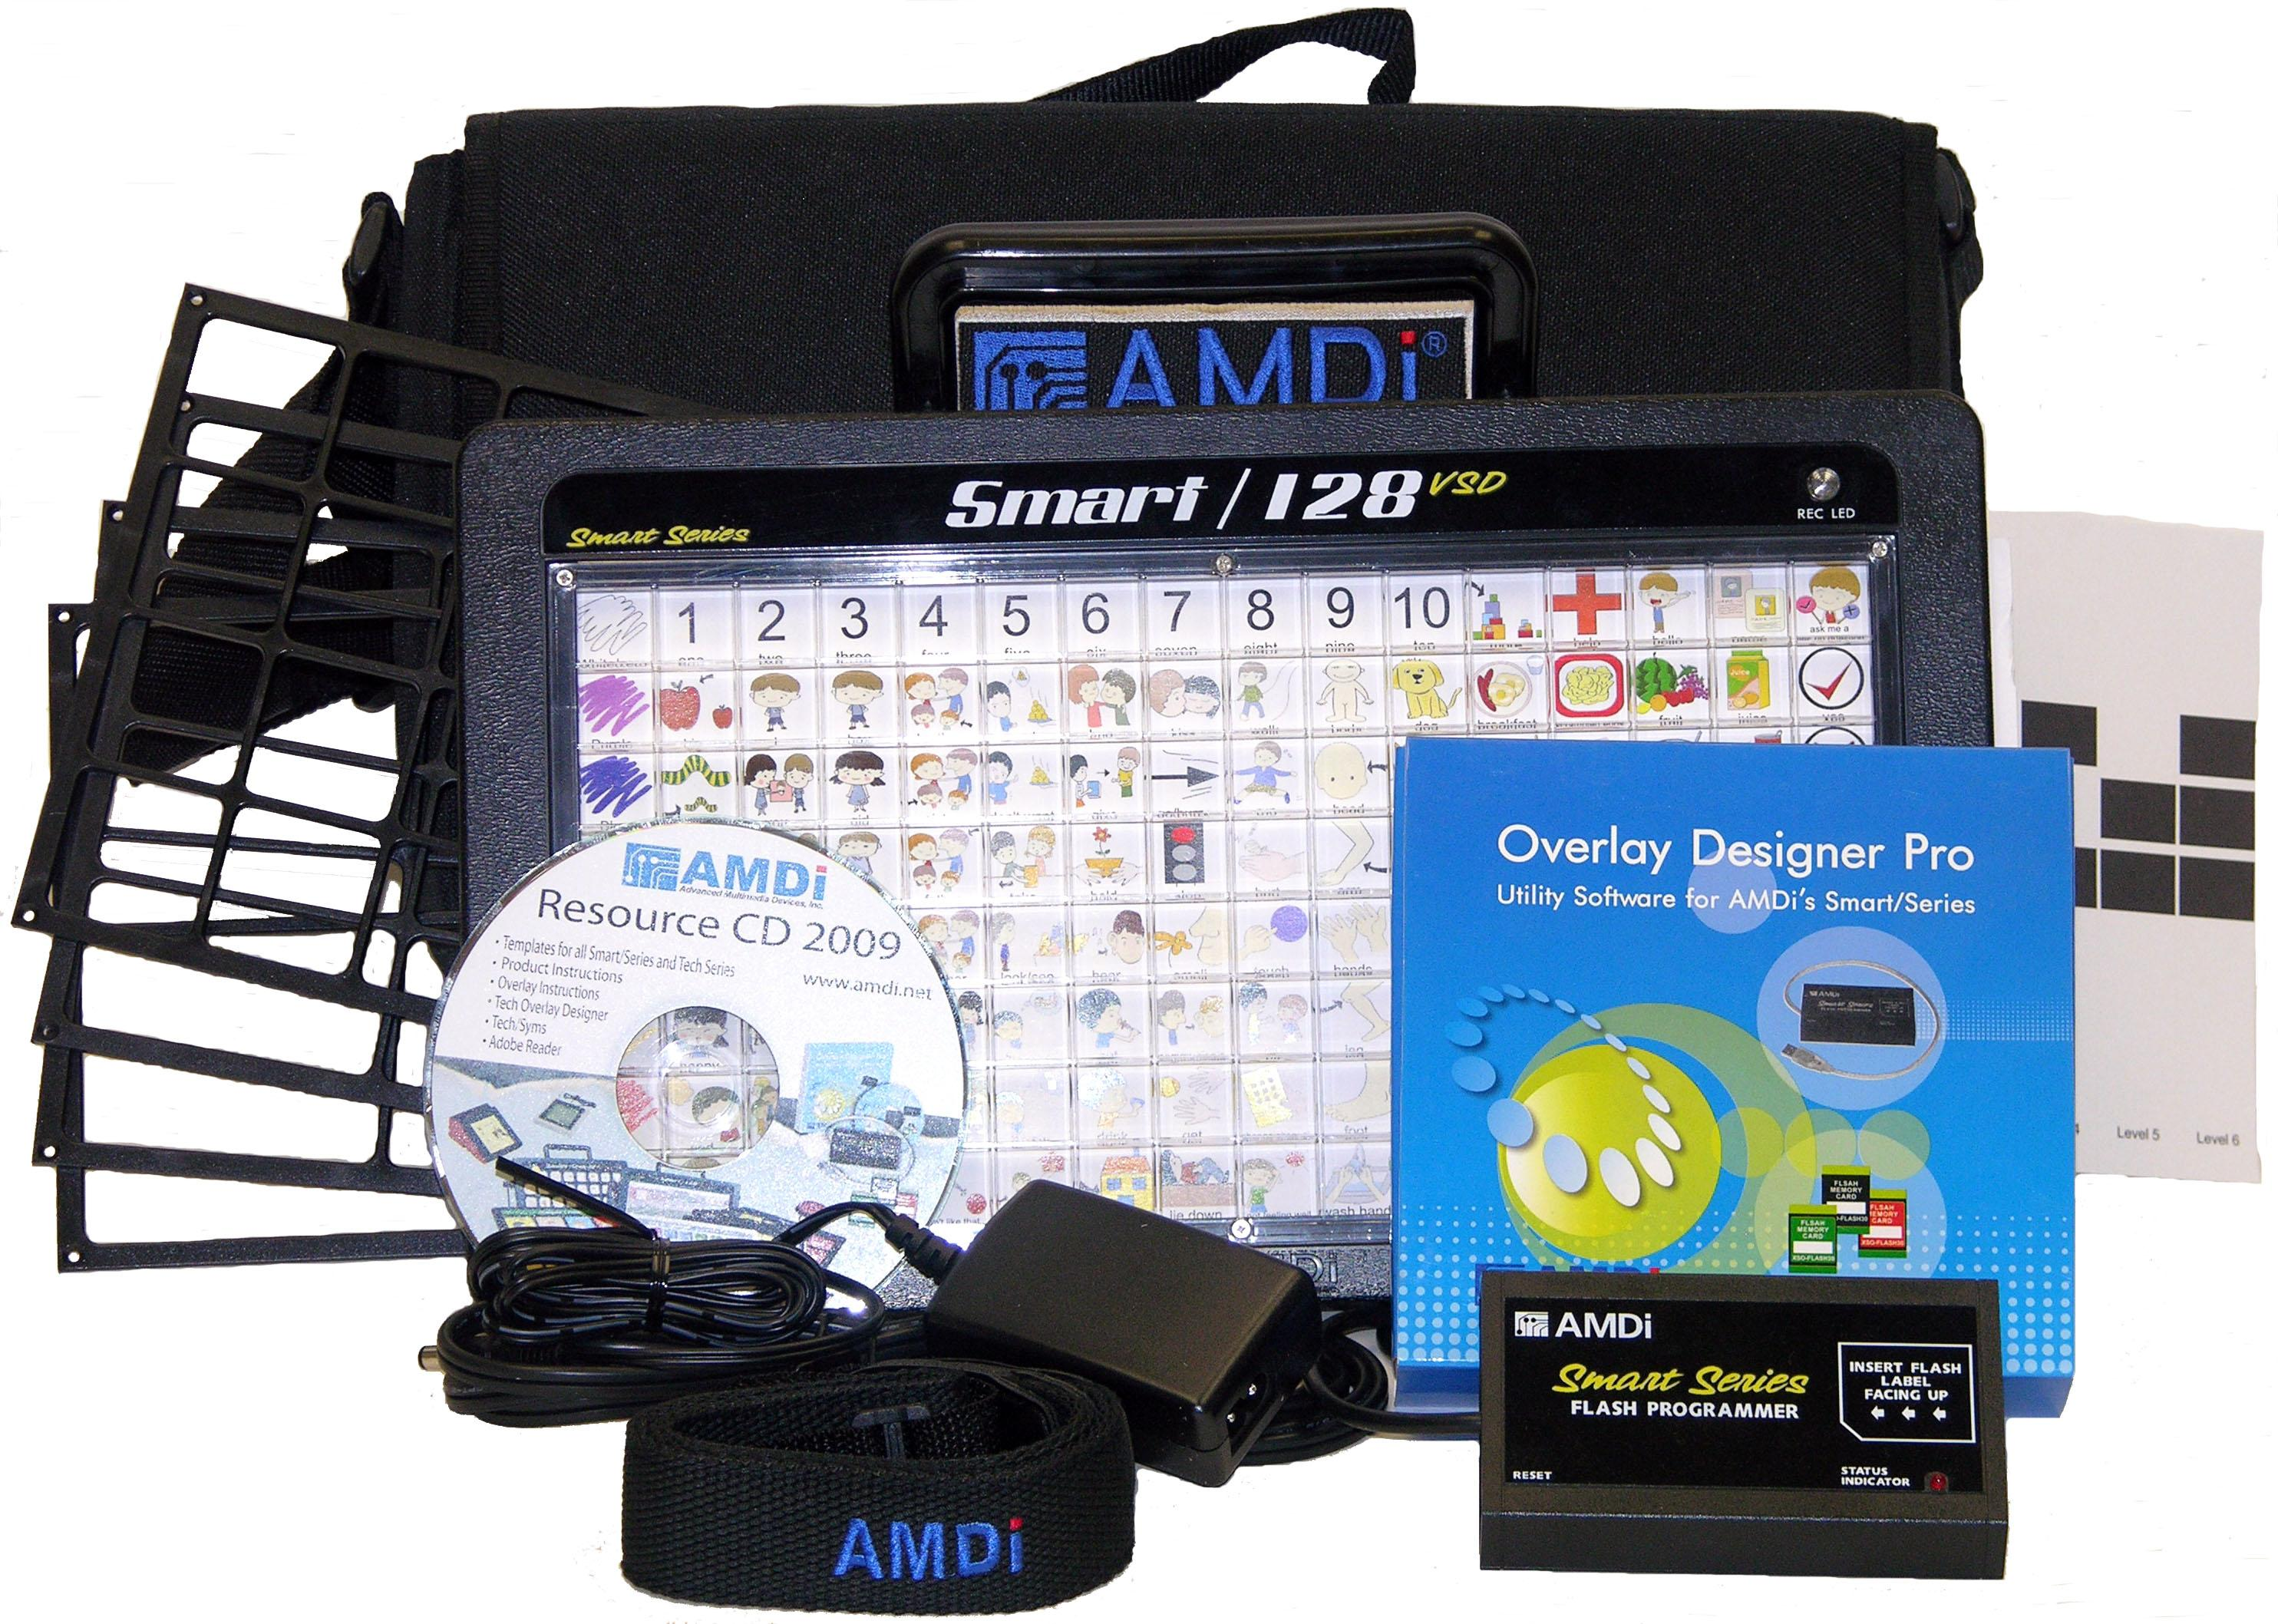 Smart/128 Bundle Kit